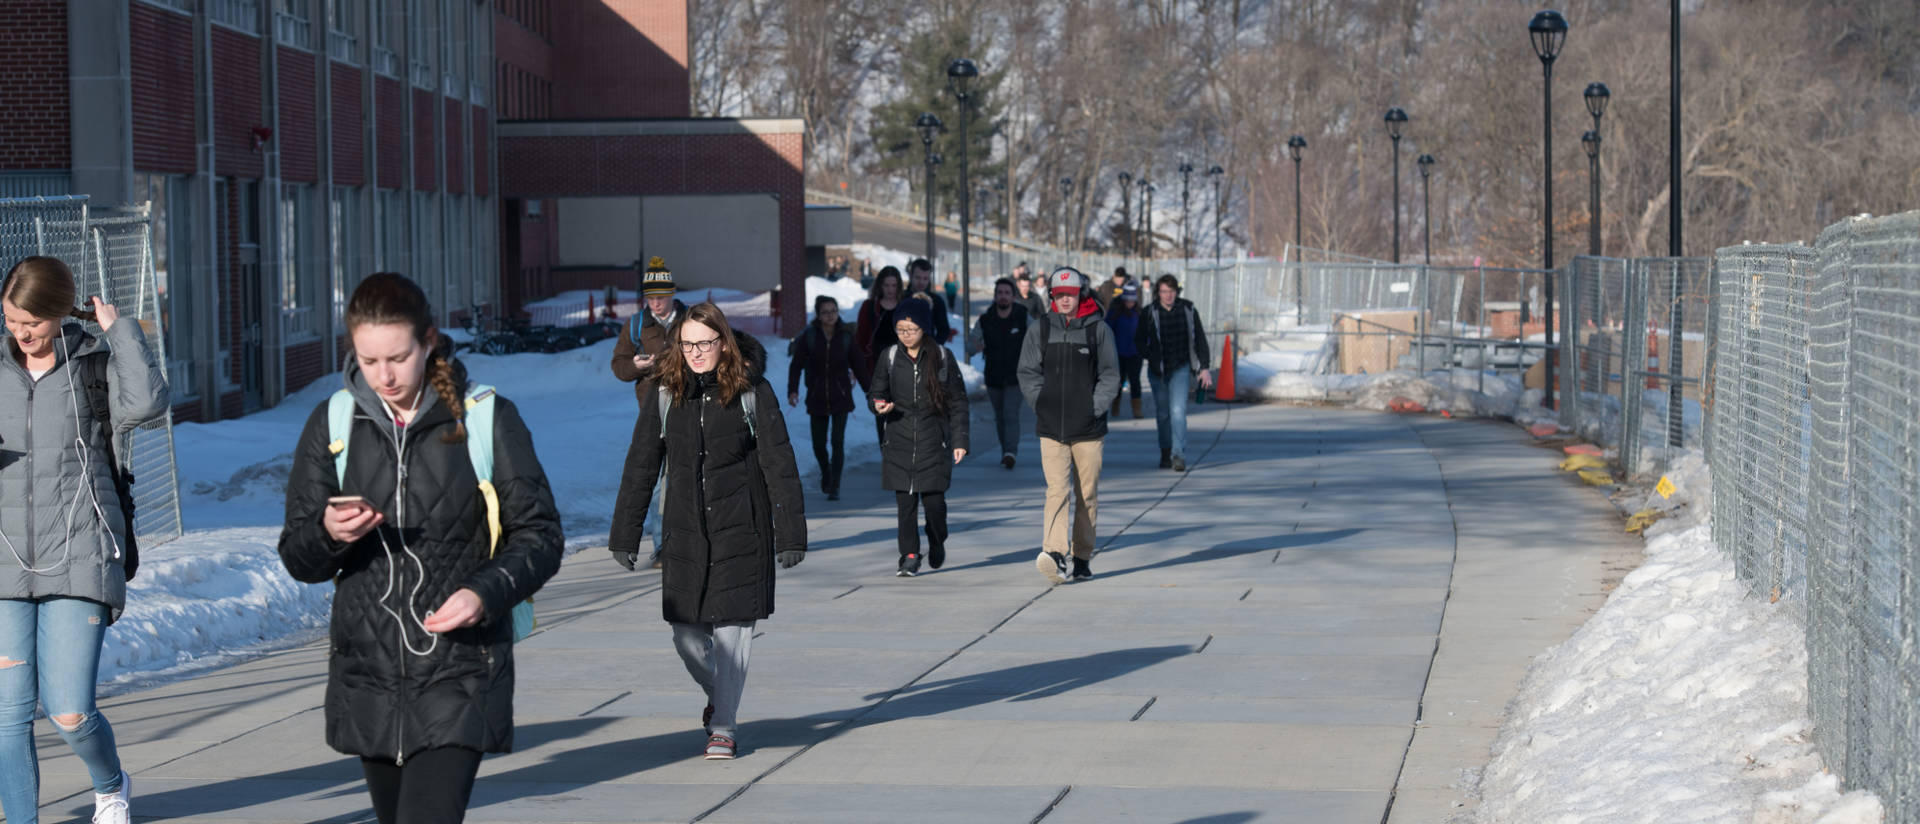 Students on campus in early spring